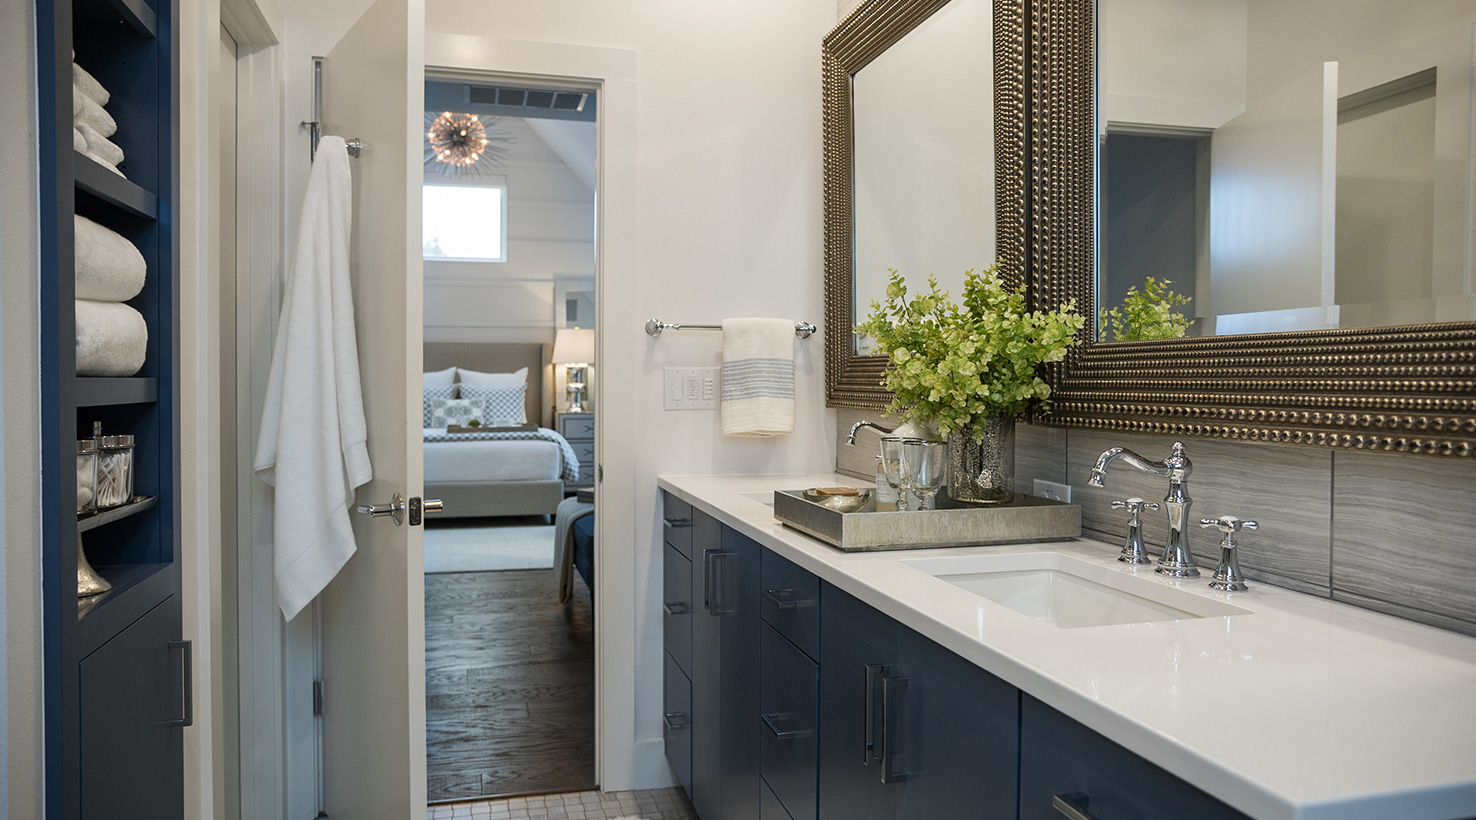 The hgtv smart home 2015 sponsored by sherwin williams for Hgtv spa bathroom ideas